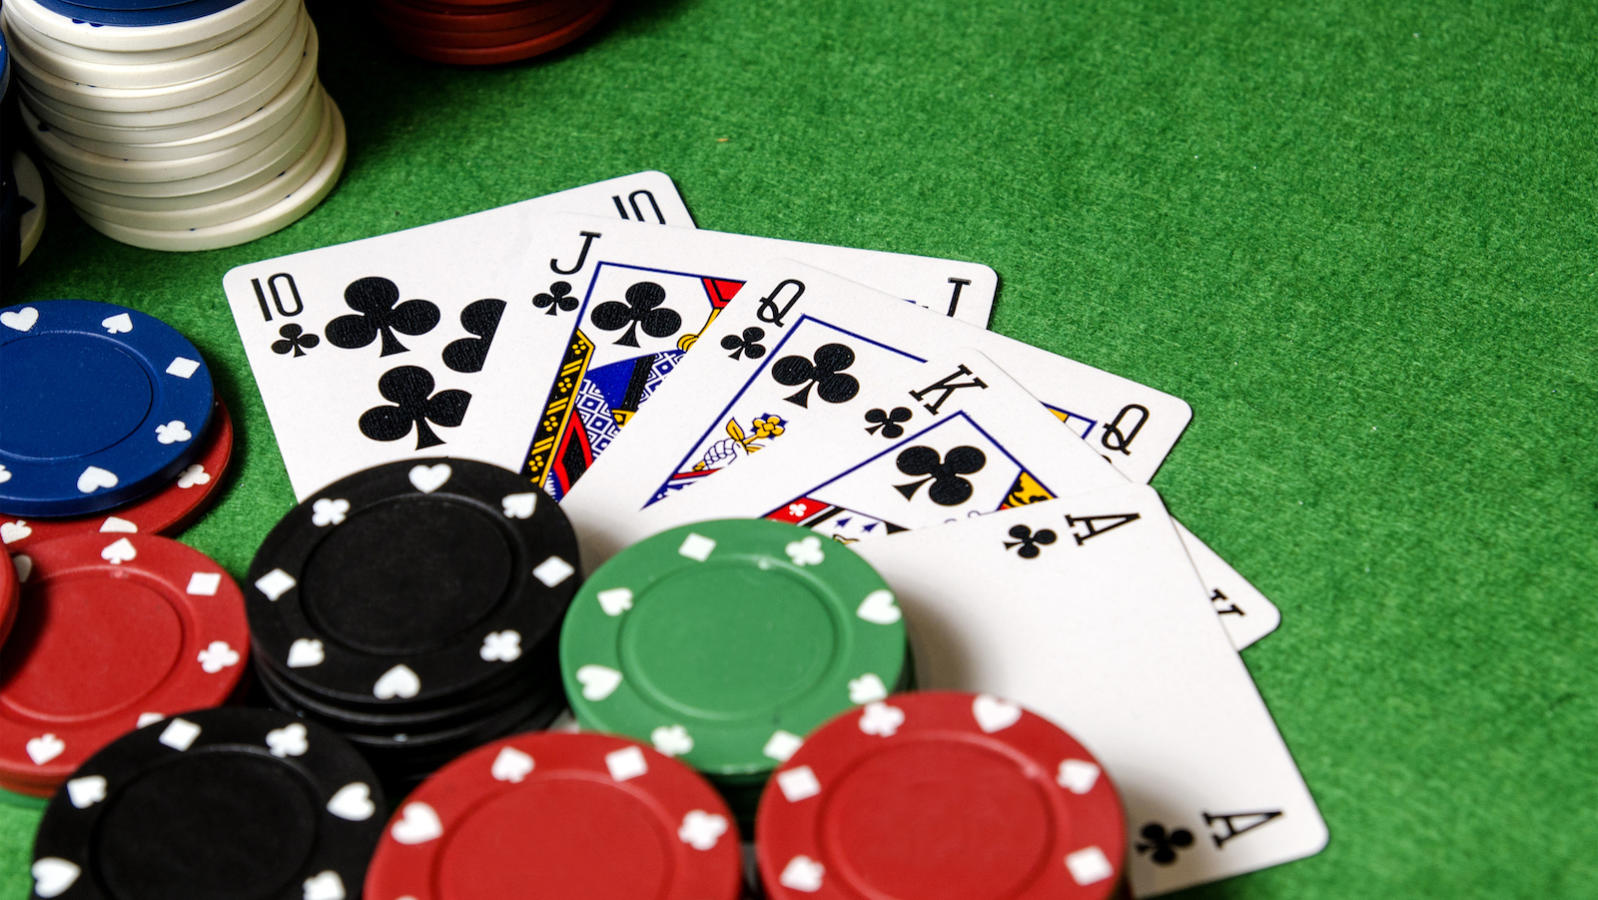 Vietnamese man accused of running gambling den in Taiwan - Vietnamese  Migrant and Immigrant Office